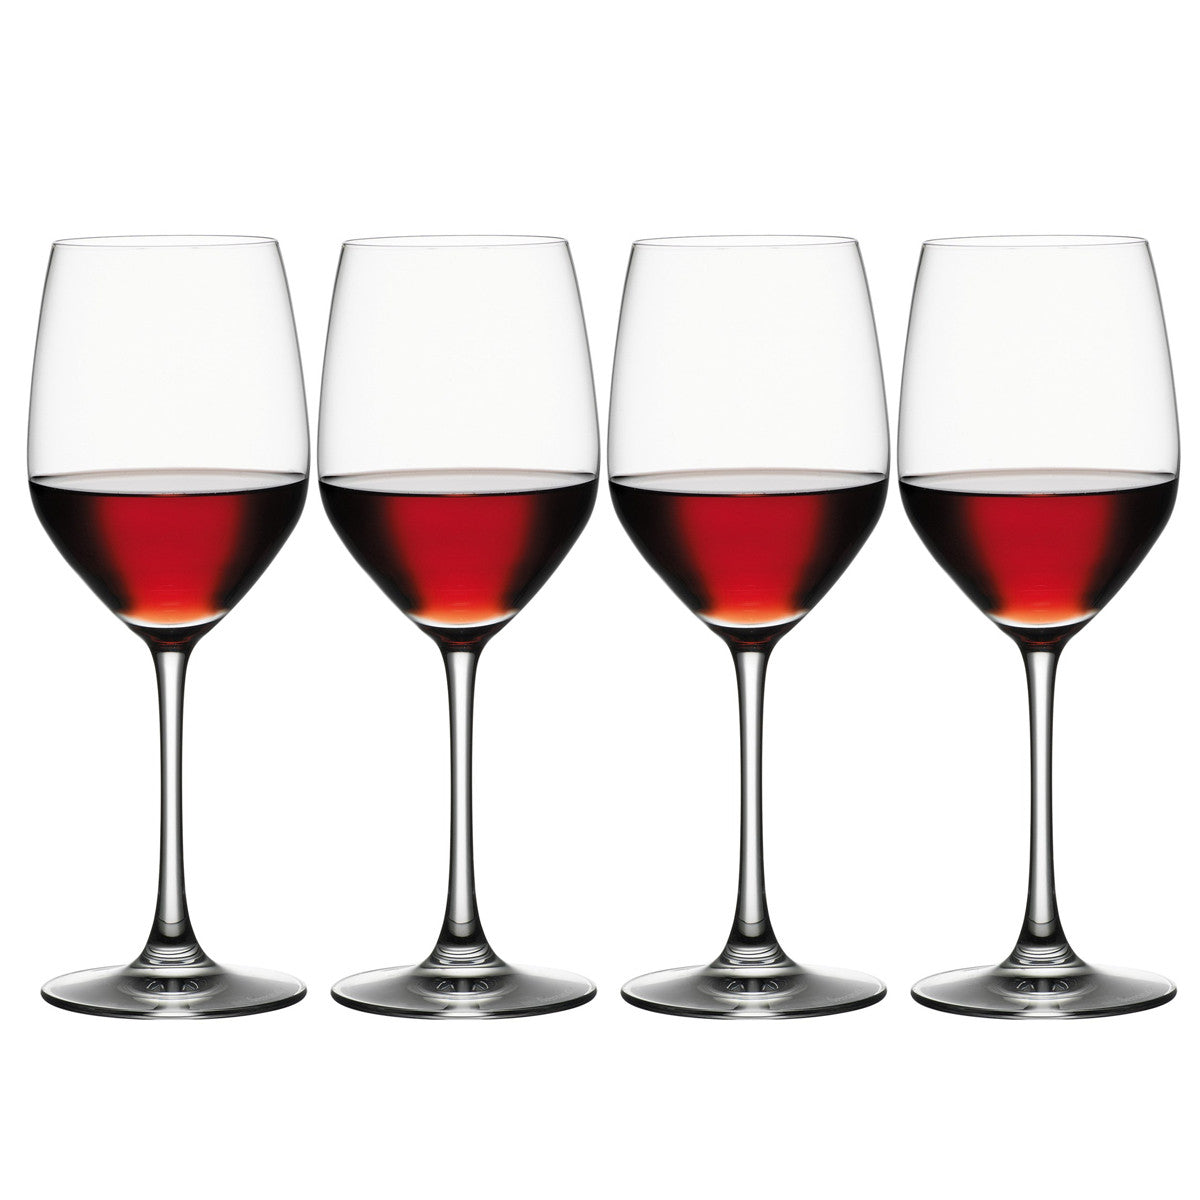 Vino Grande Red Wine Glasses / Set 4